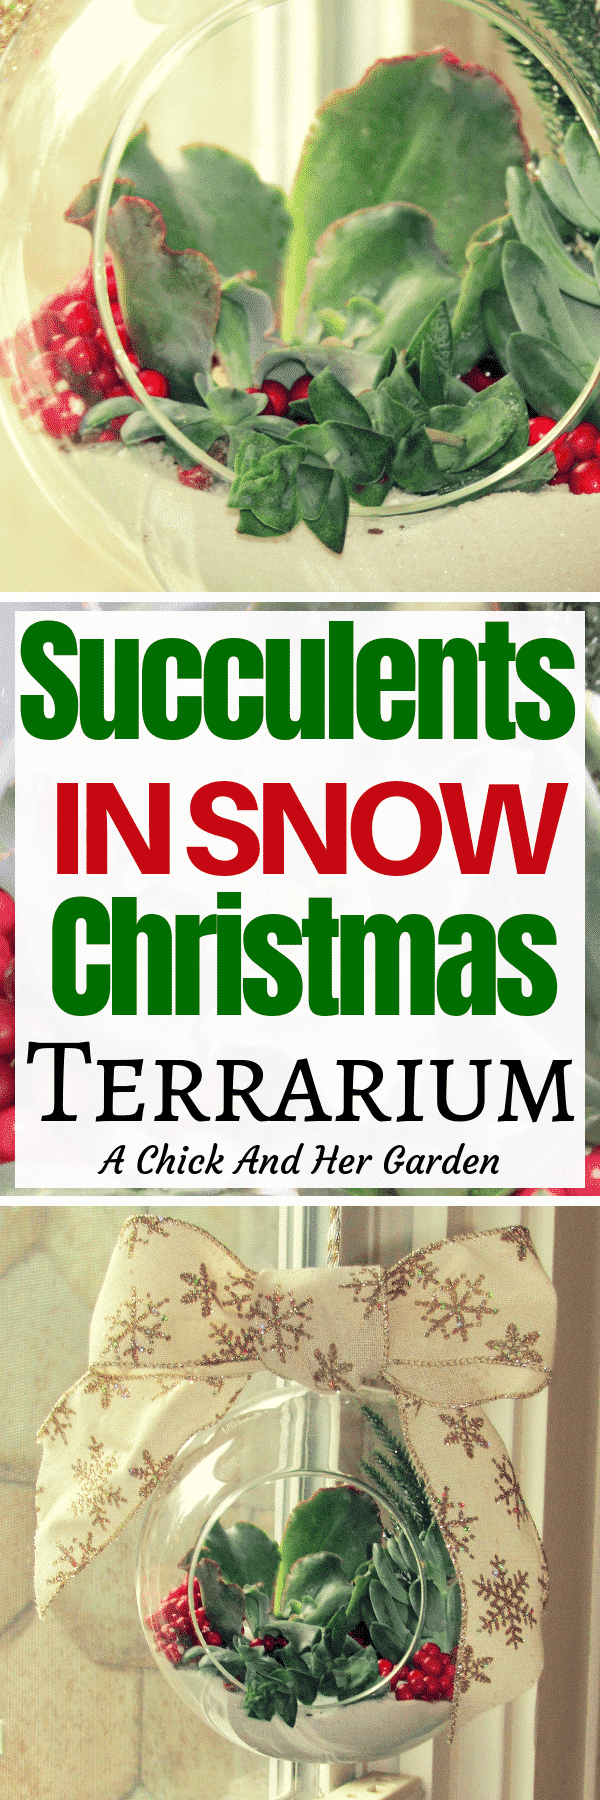 This was the perfect way to use succulents in my holiday decorations! I love the way these tender succulents look like they're growing in snow! #christmasdecorations #christmassucculents #succulents #terrarium #achickandhergarden